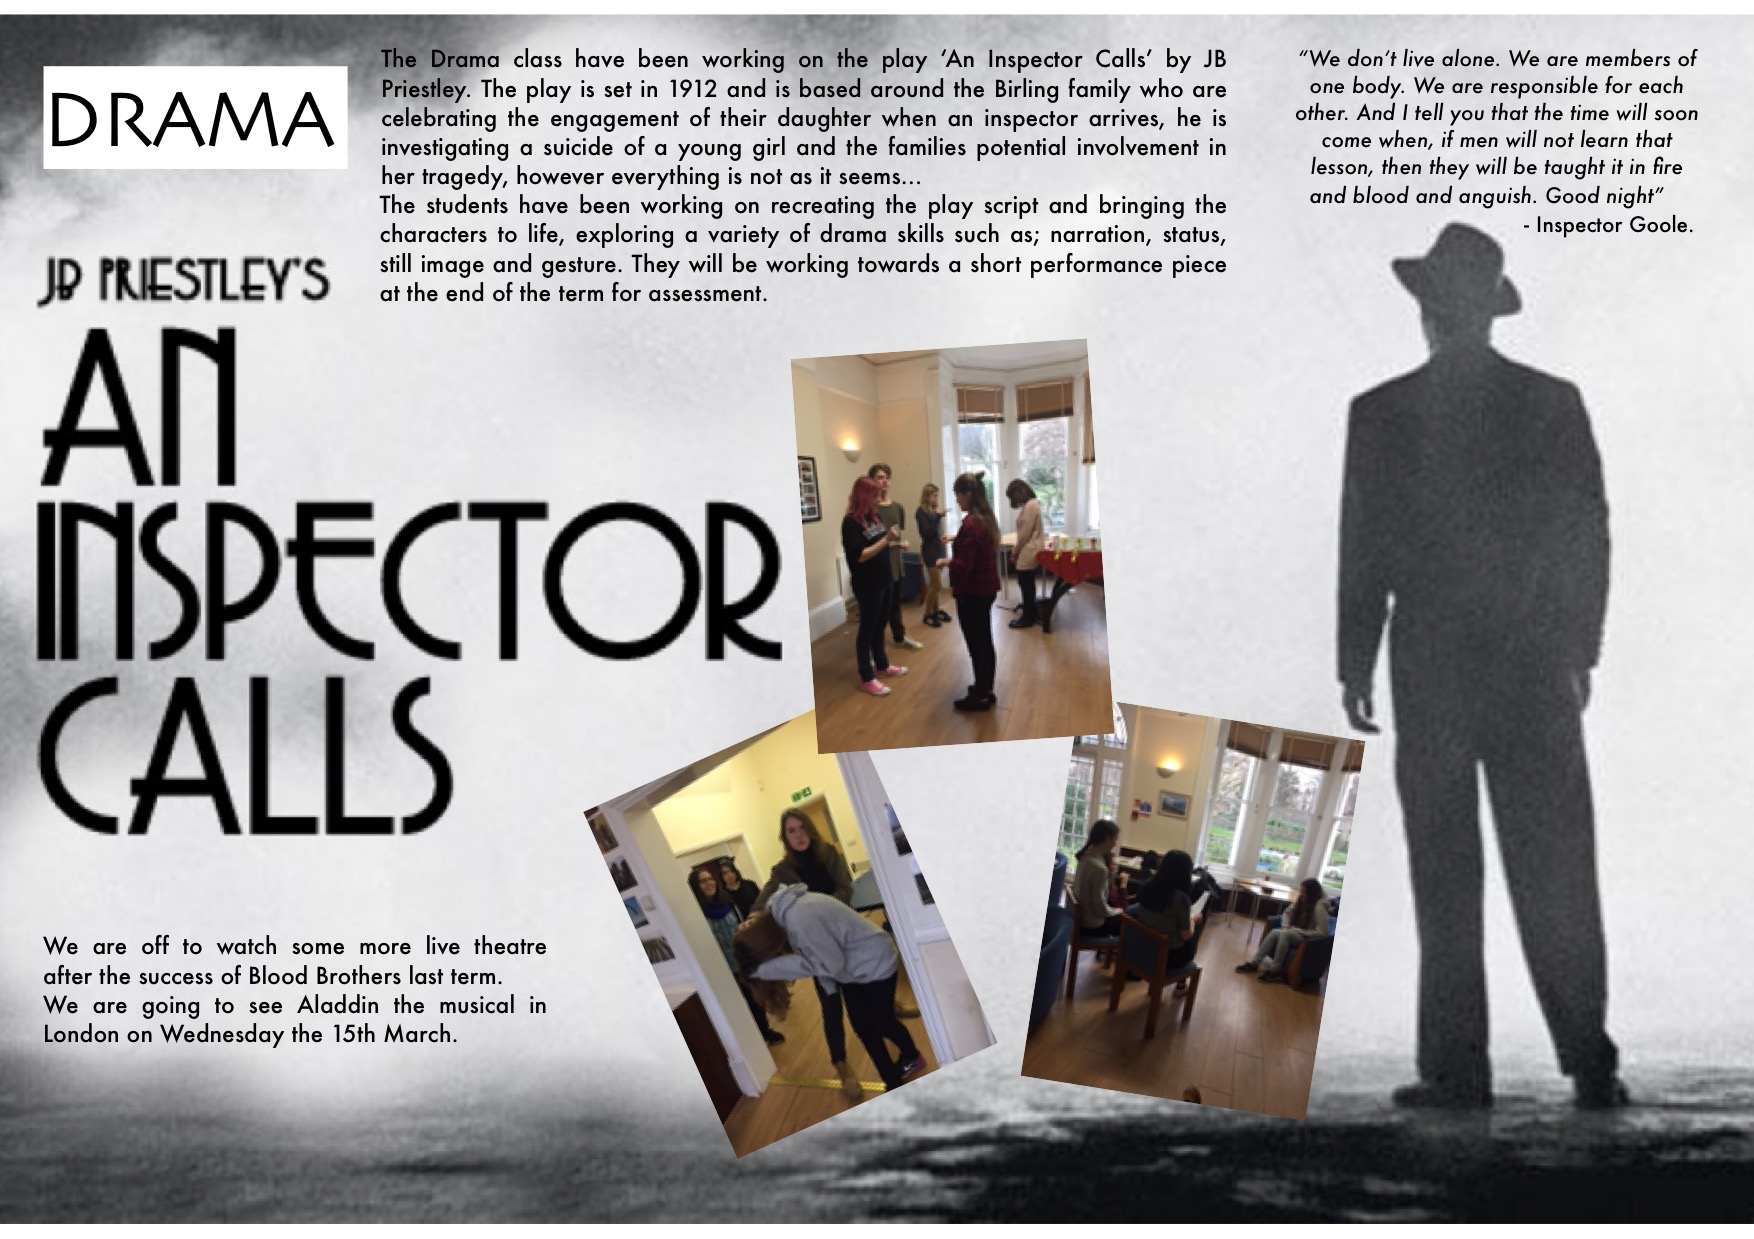 an-inspector-calls-article-_001